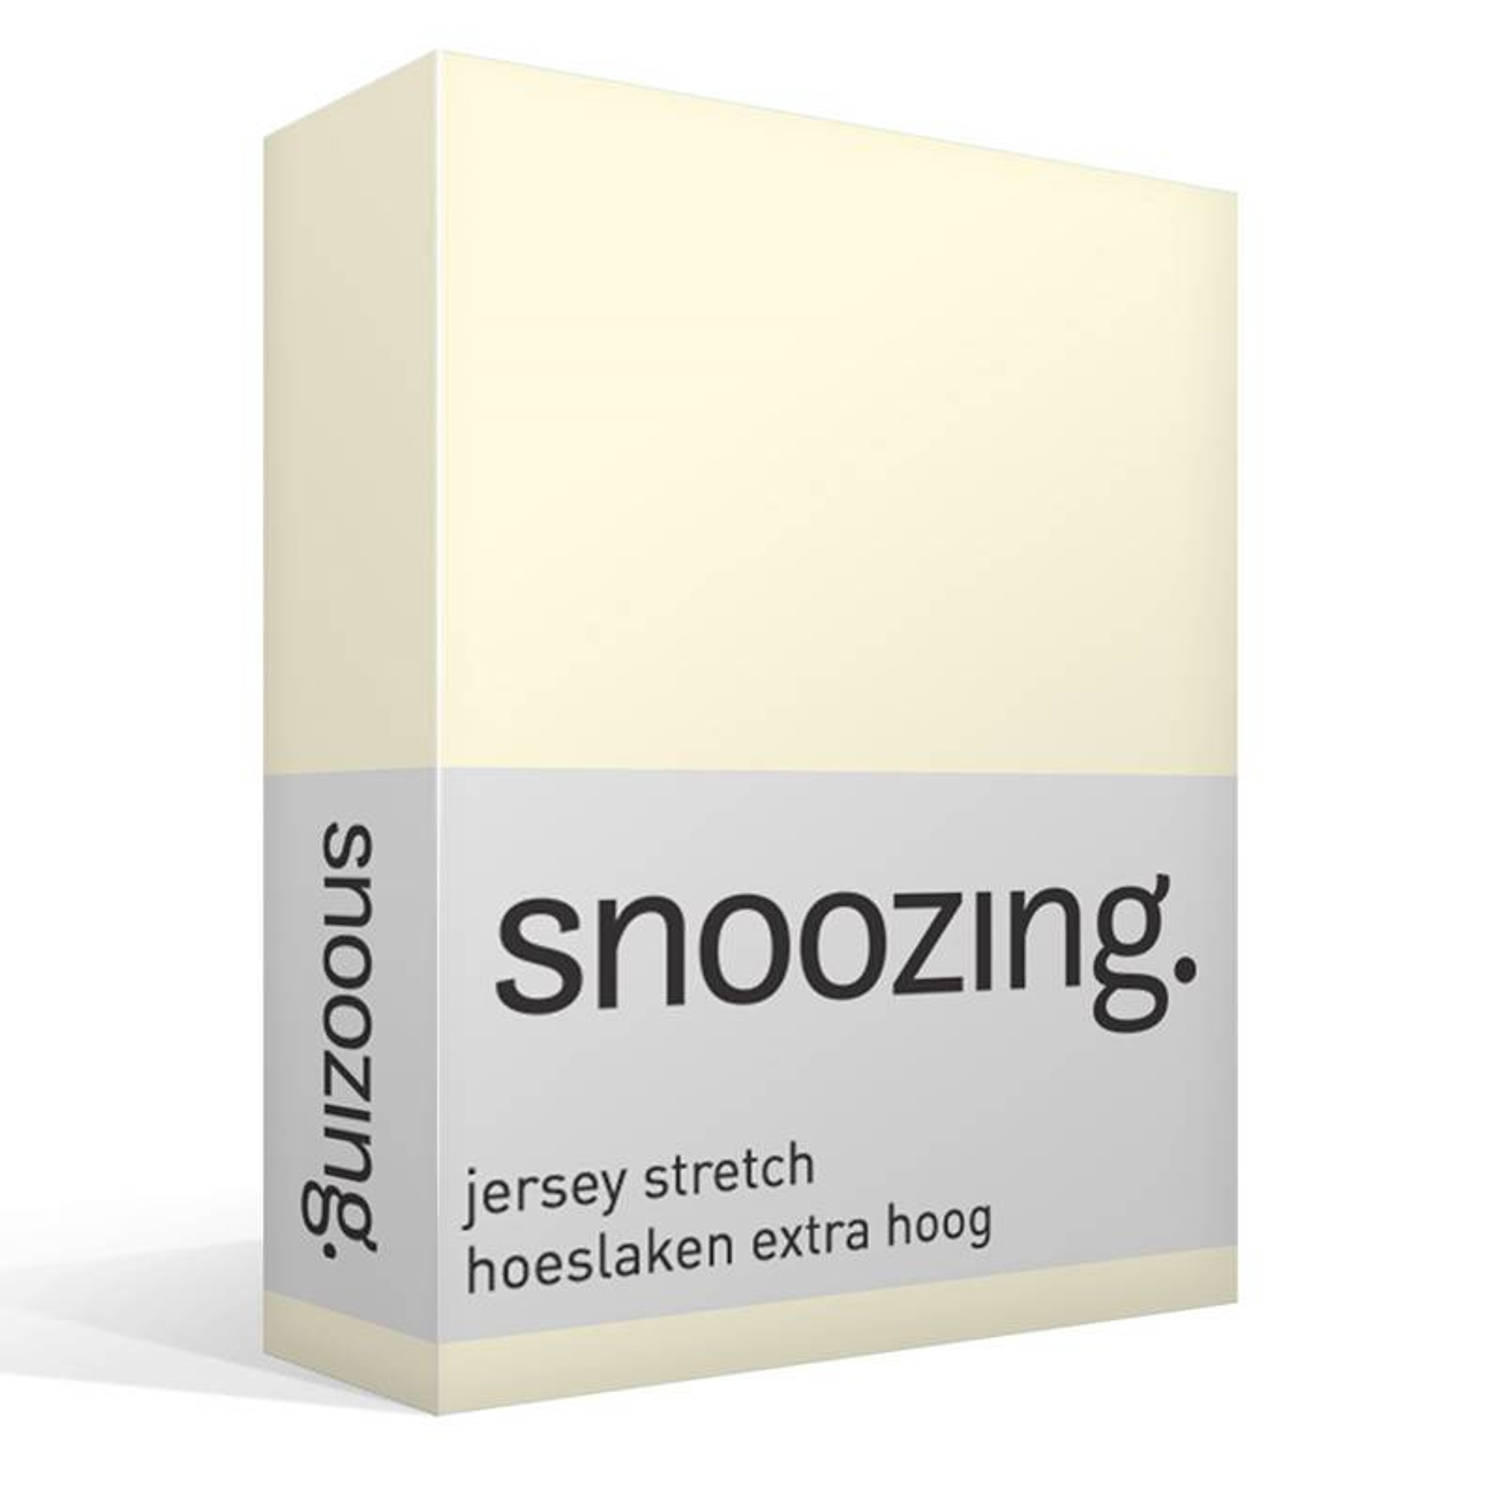 Snoozing jersey stretch hoeslaken extra hoog Lits jumeaux (160 180x200 220 cm)